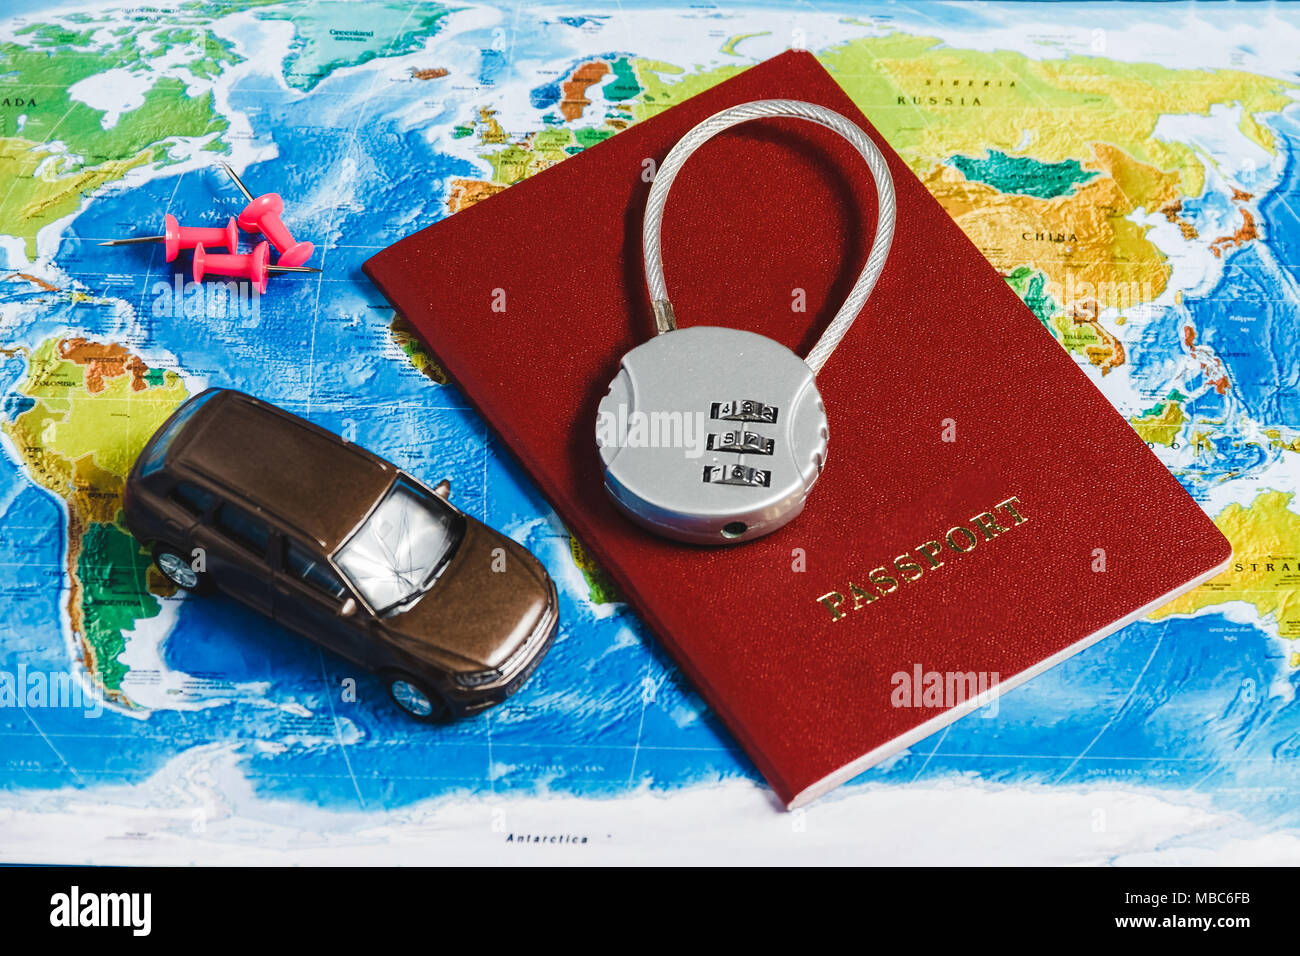 Code Lock on Red Passport, Toy Car, Pushpins on World Map Background. Concept-Ban on Travel, Lack of Visa. - Stock Image